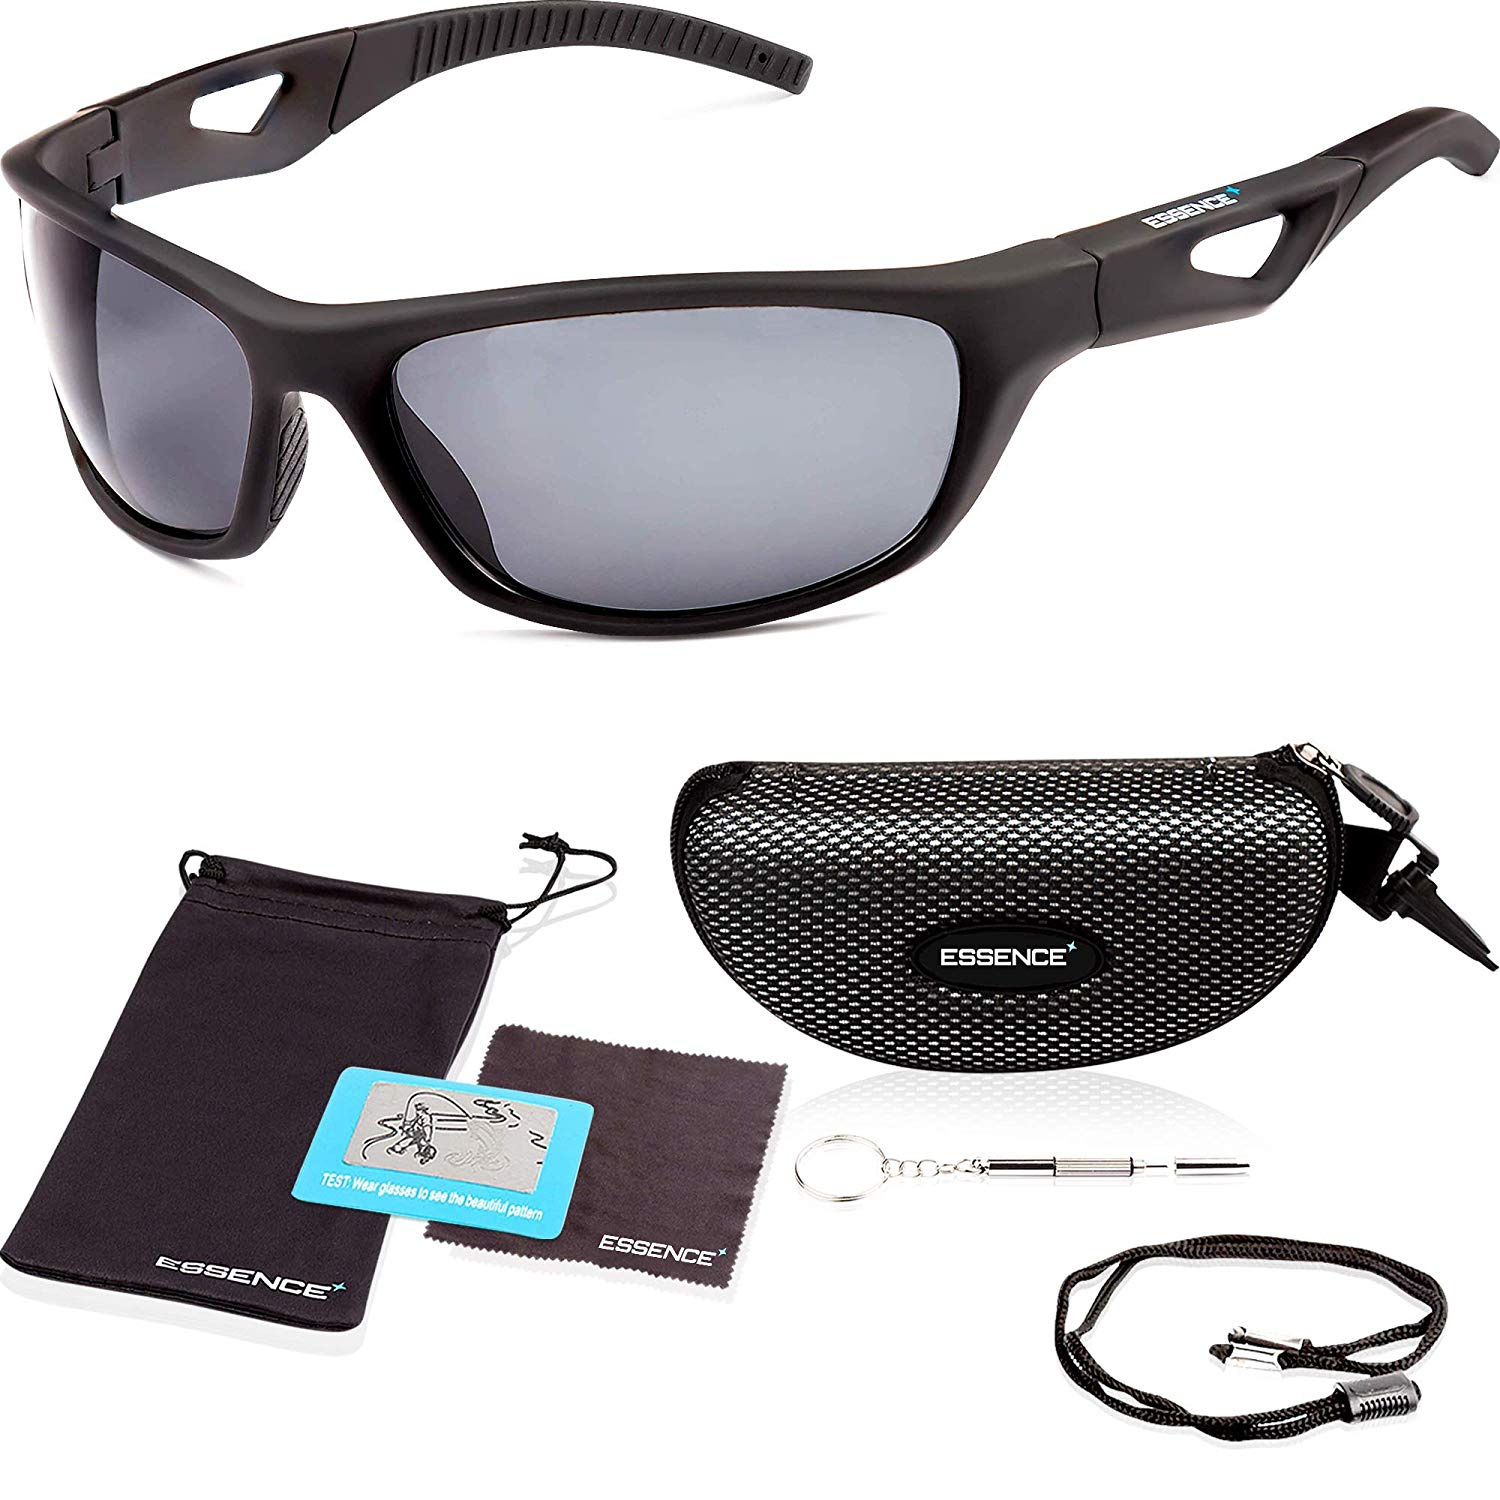 9b42e2397abc essence  Polarised Sunglasses for Men   Women – UV400 Eye Protection Glasses  – Also for Sports Cycling Day and Night Driving Running Skiing Fishing  Sailing ...